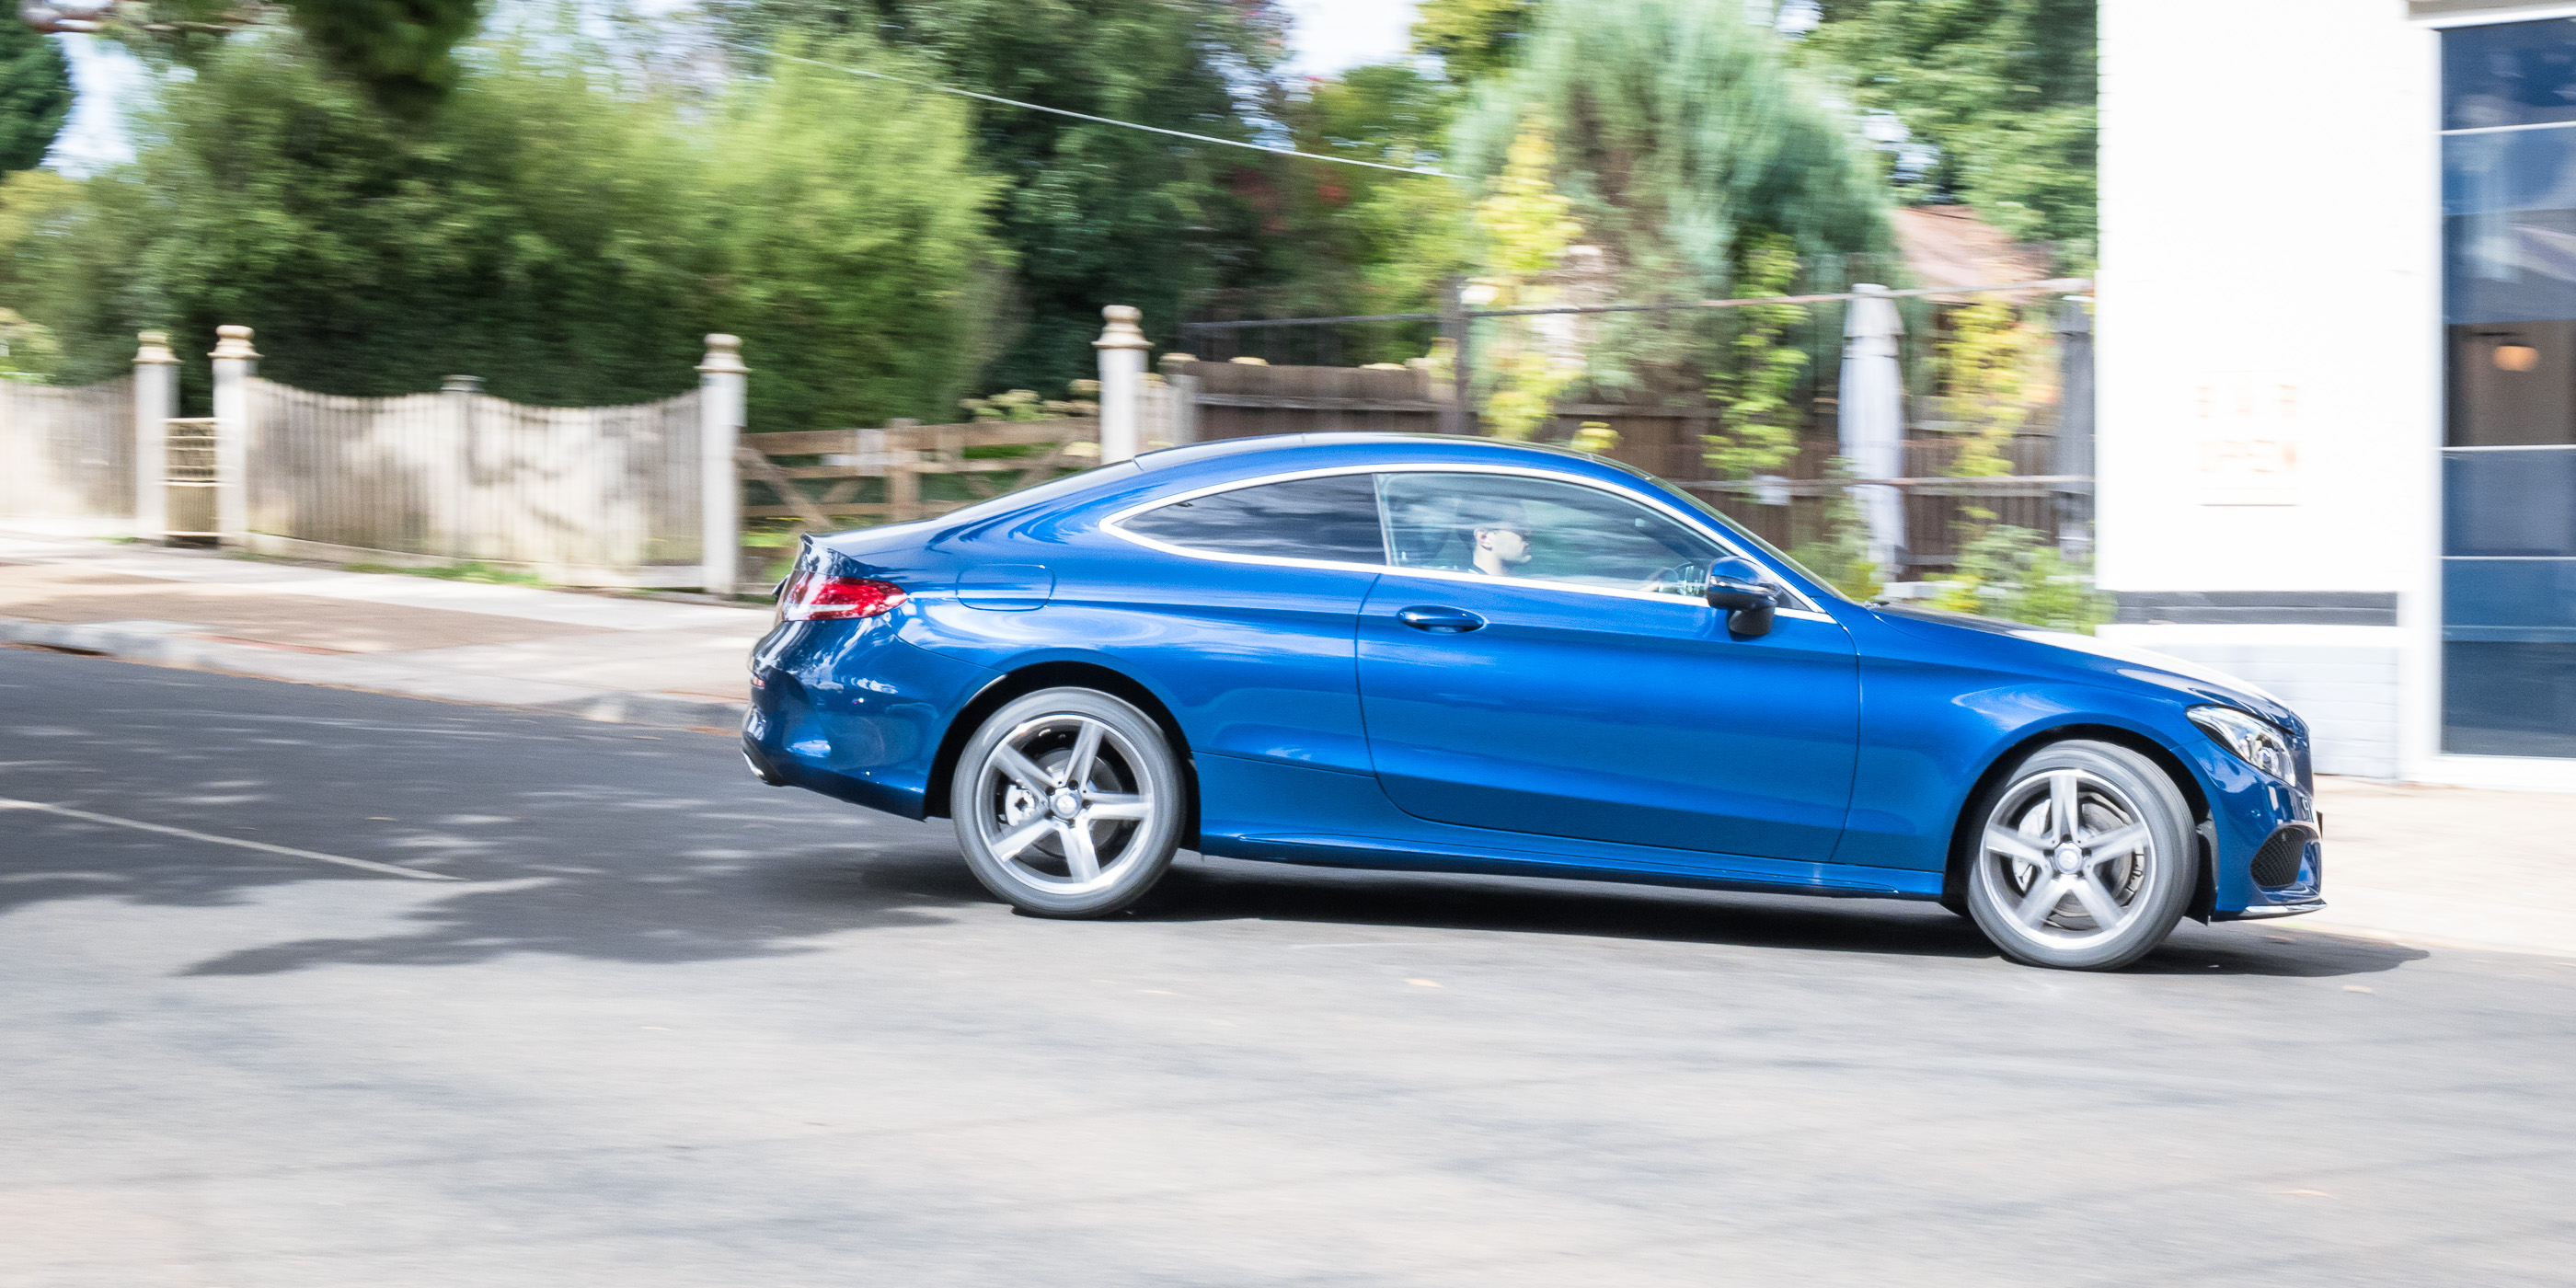 2016 mercedes benz c class coupe review photos caradvice for Mercedes benz reviews c class